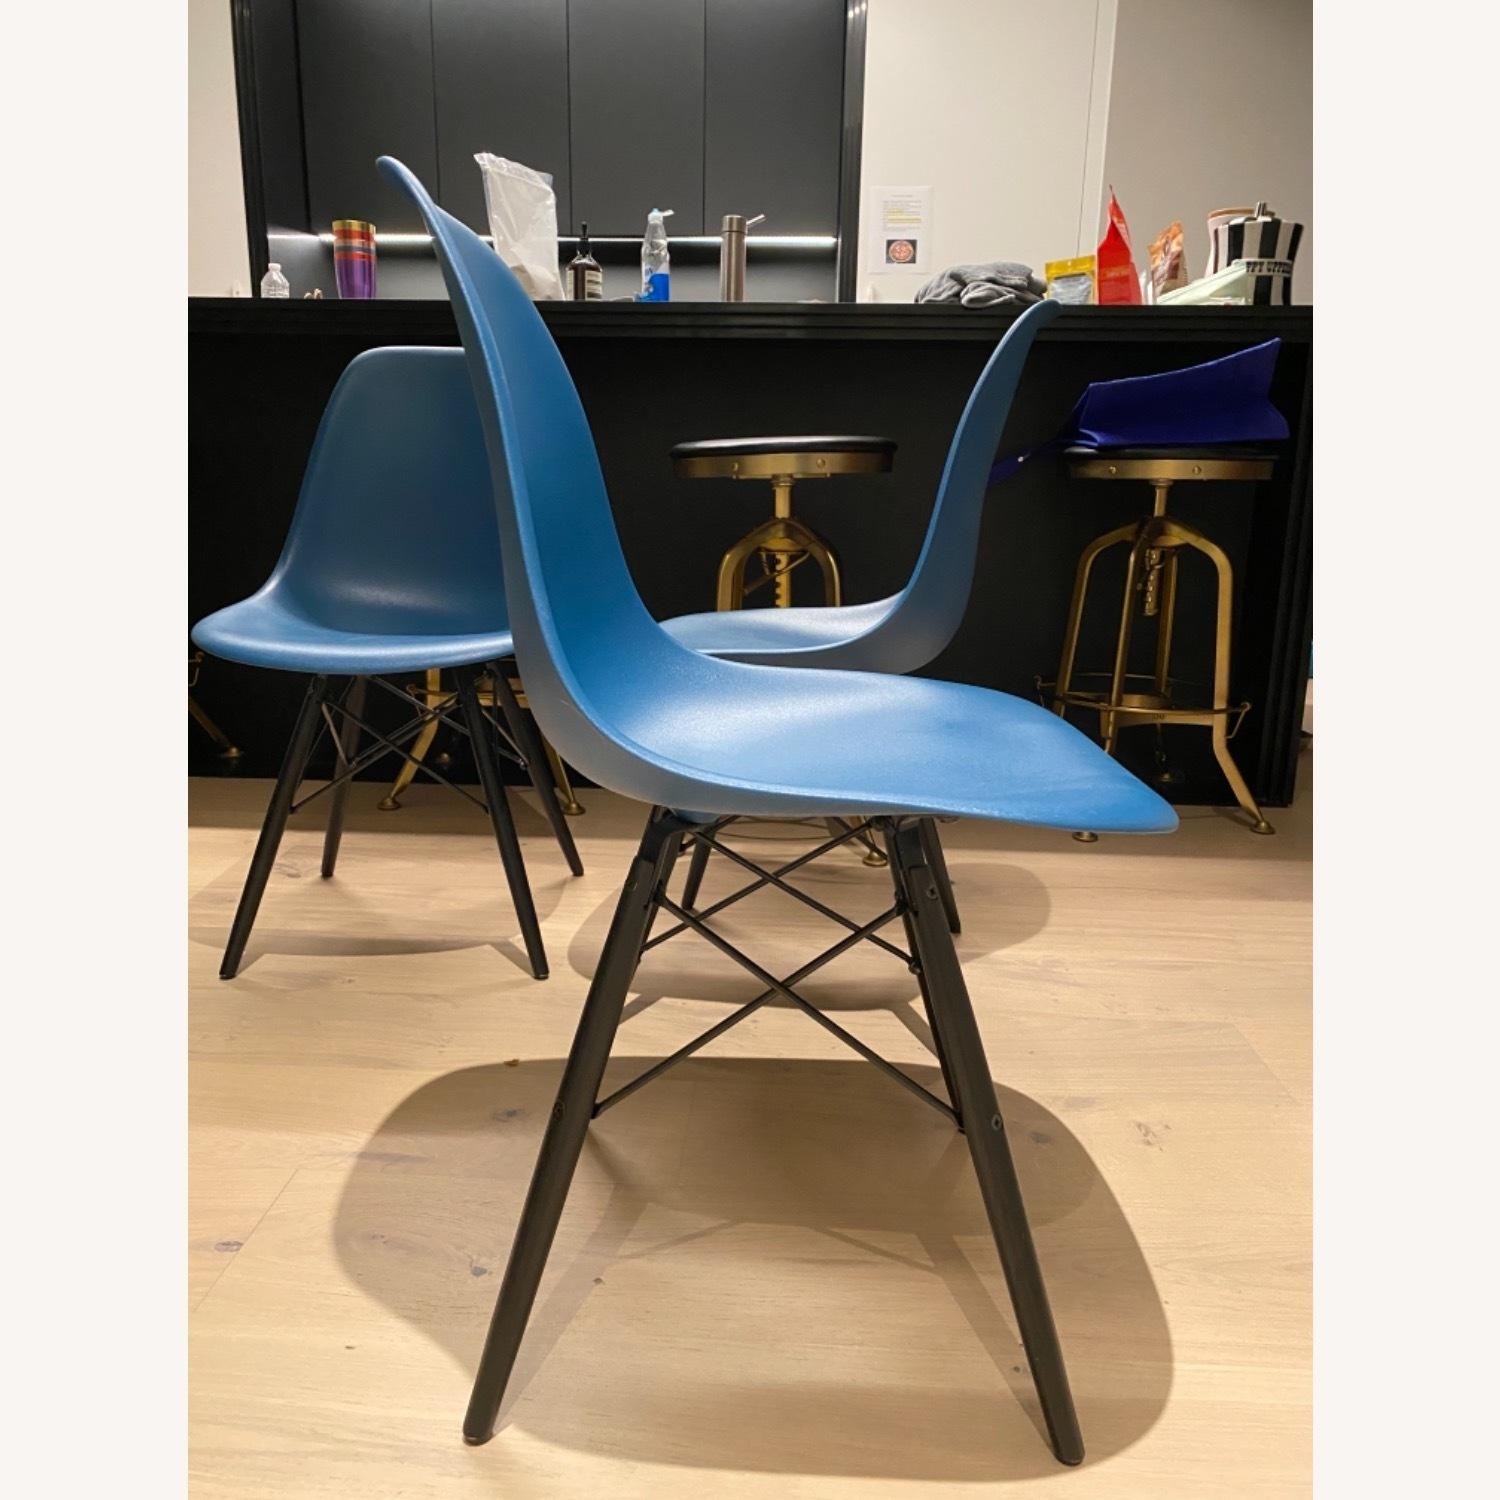 4 x Herman Miller Eames Molded Plastic Side Chair - image-16